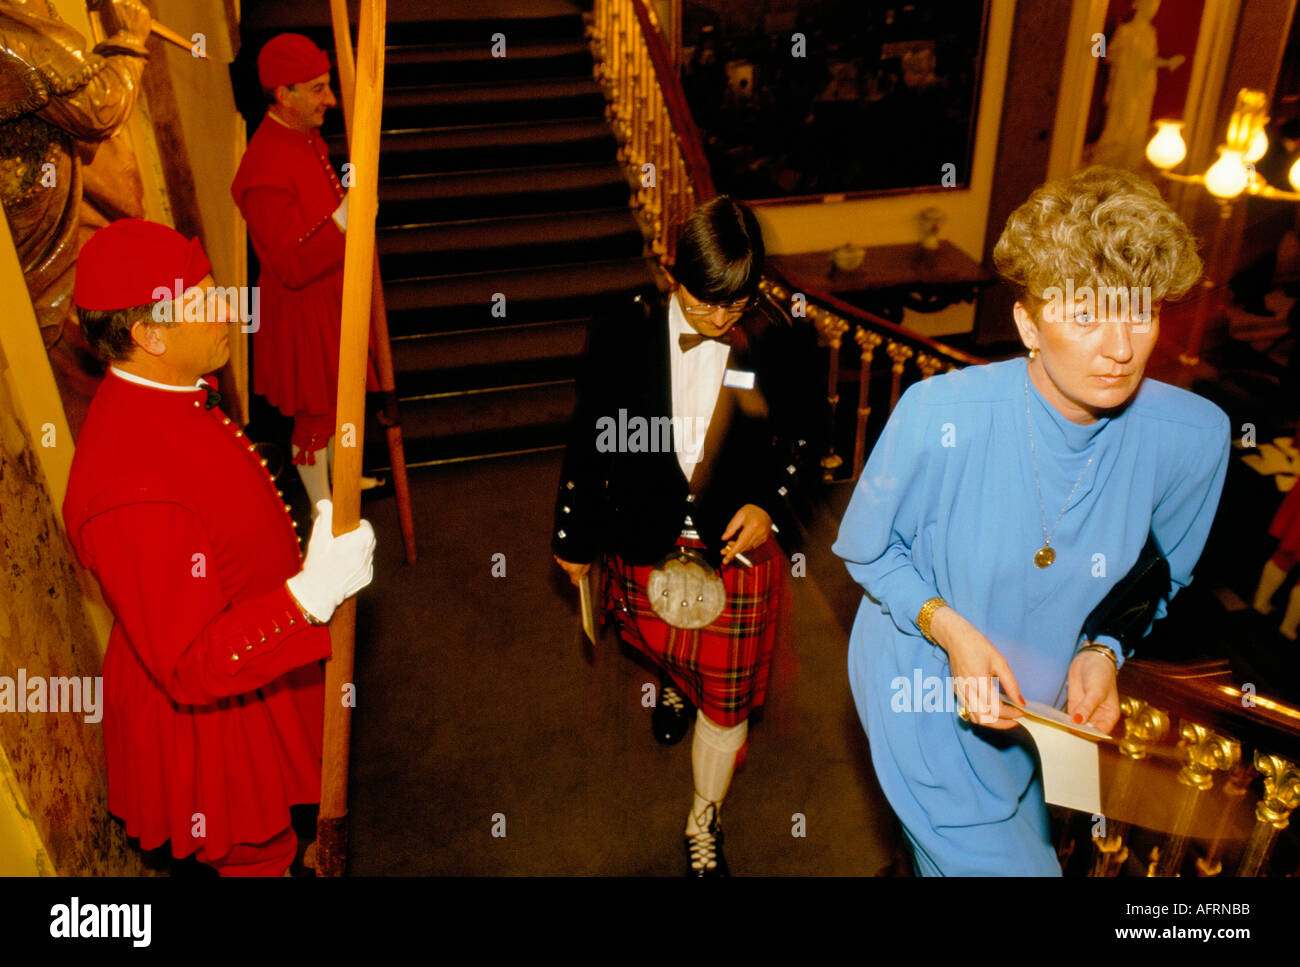 BANQUET AT 'FISHMONGERS HALL'  LONDON LIVERY COMPANY DOGGETTS MEN LINE STAIRS TO HALL PHOTO HOMER SYKES - Stock Image